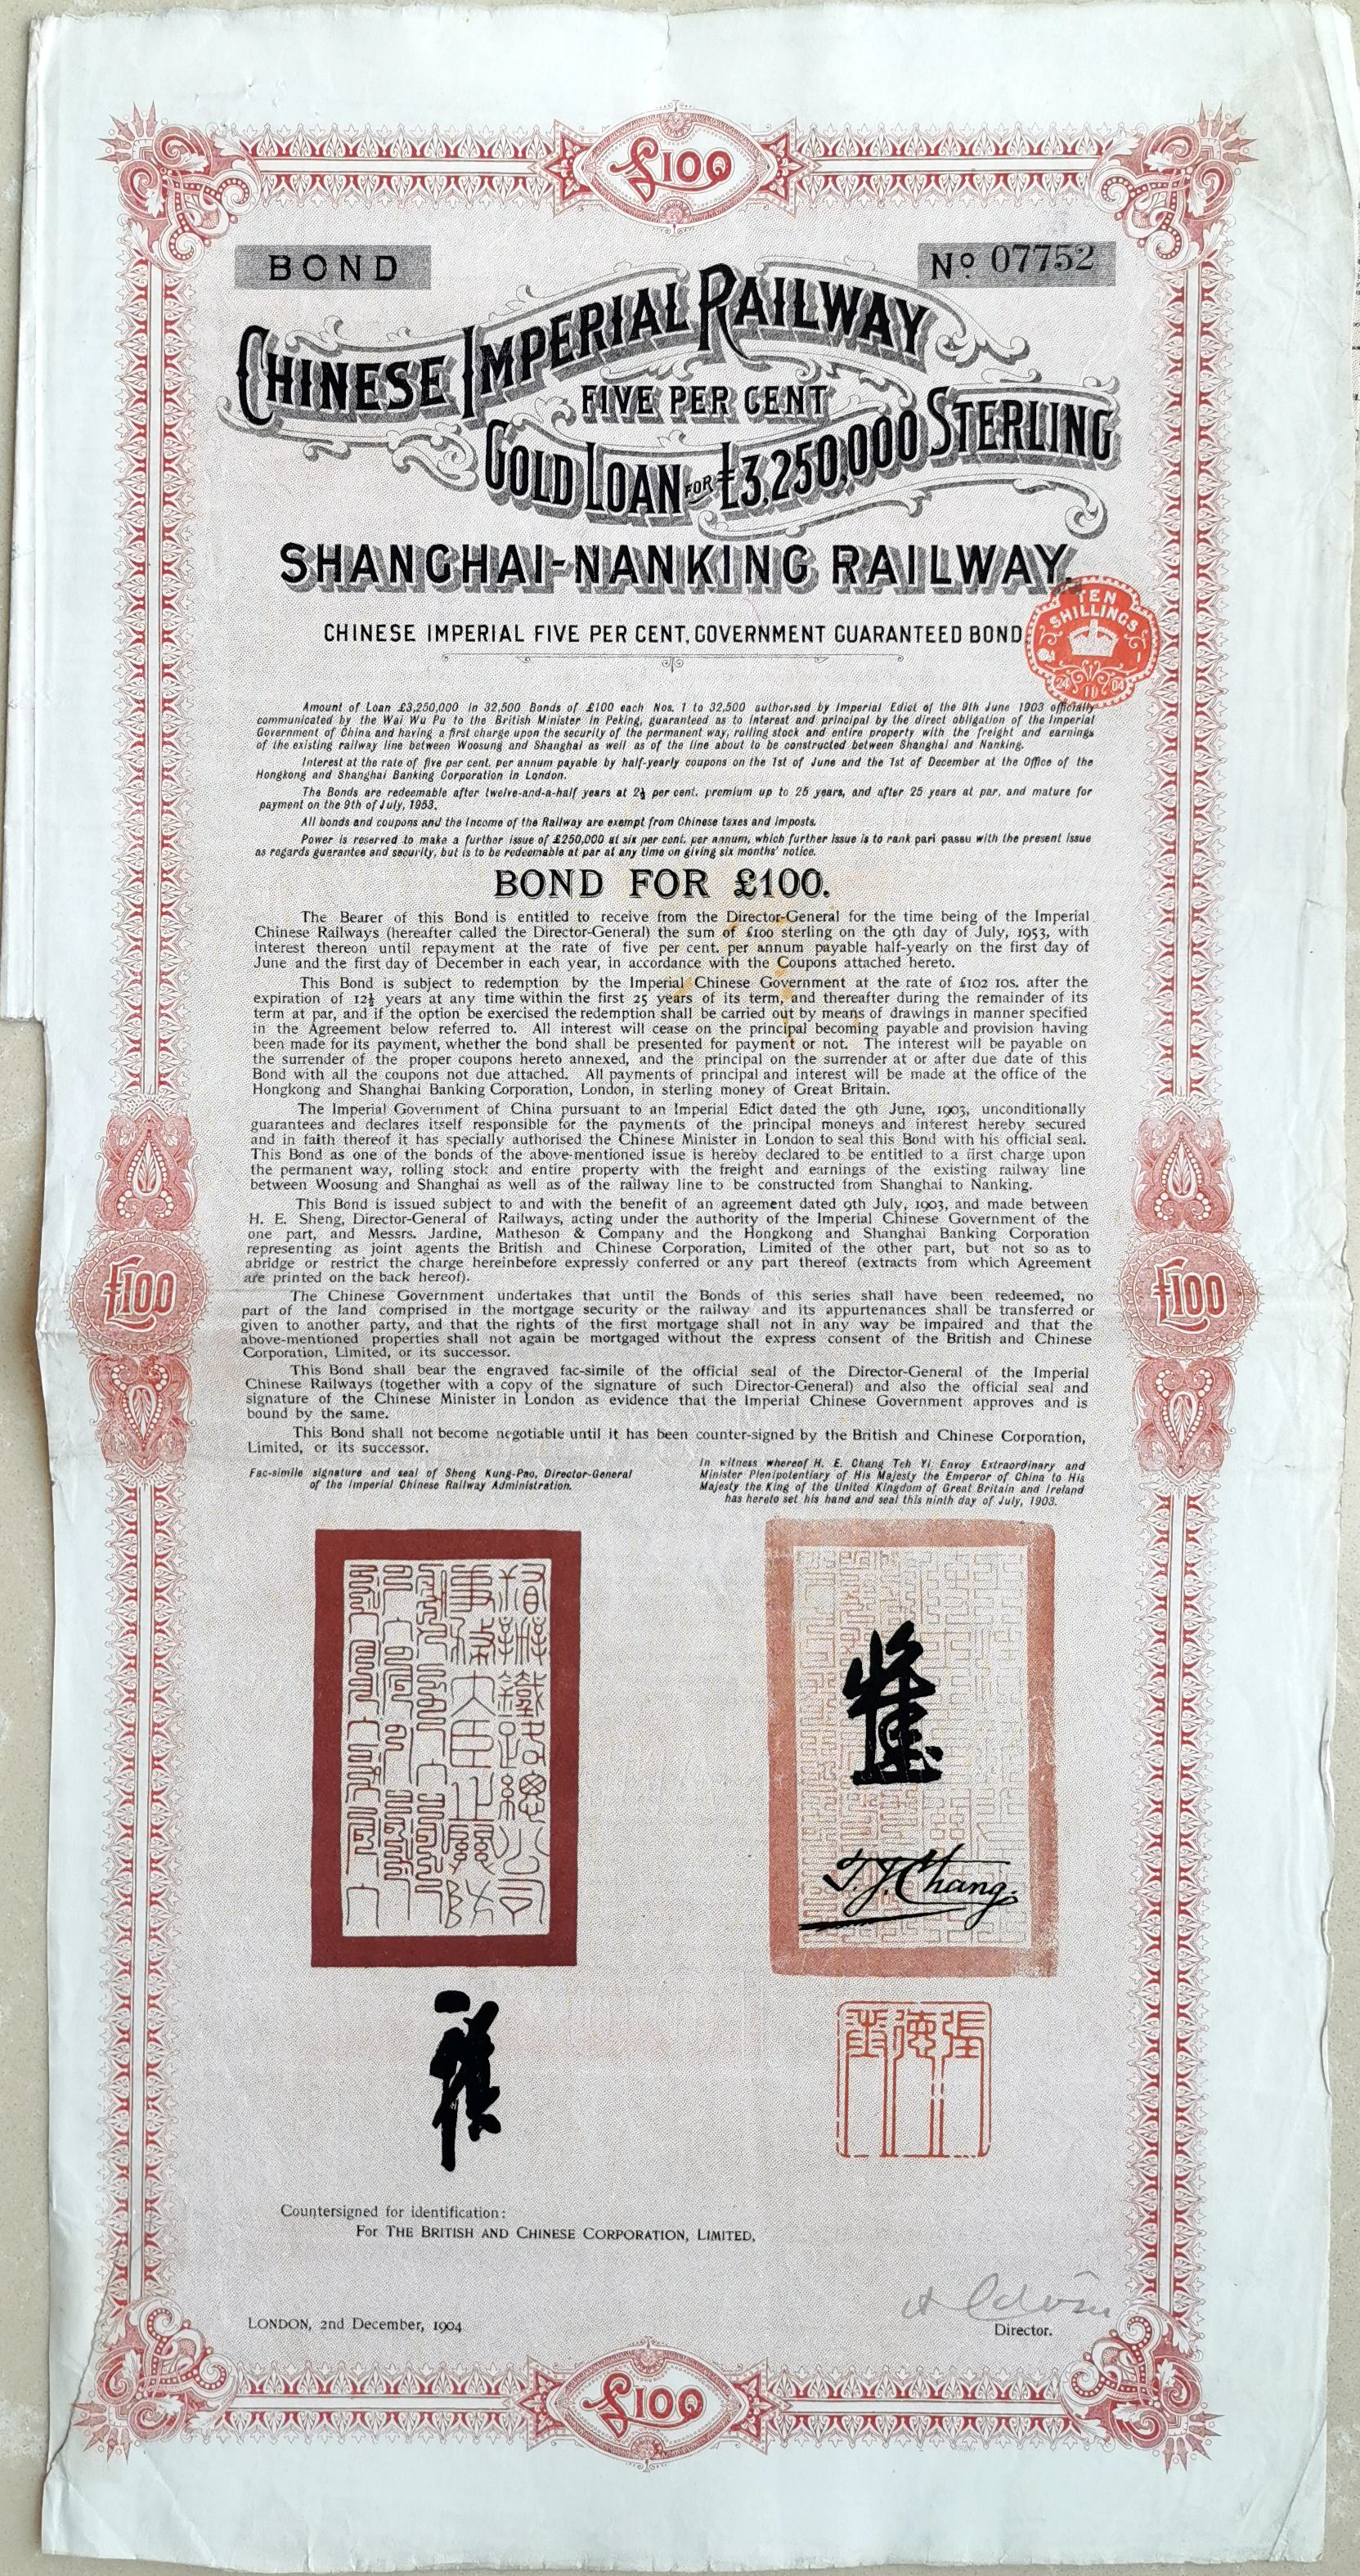 B9055, China 5% Shanghai-Nanking Railway Loan, 100 Pounds Bond 1904